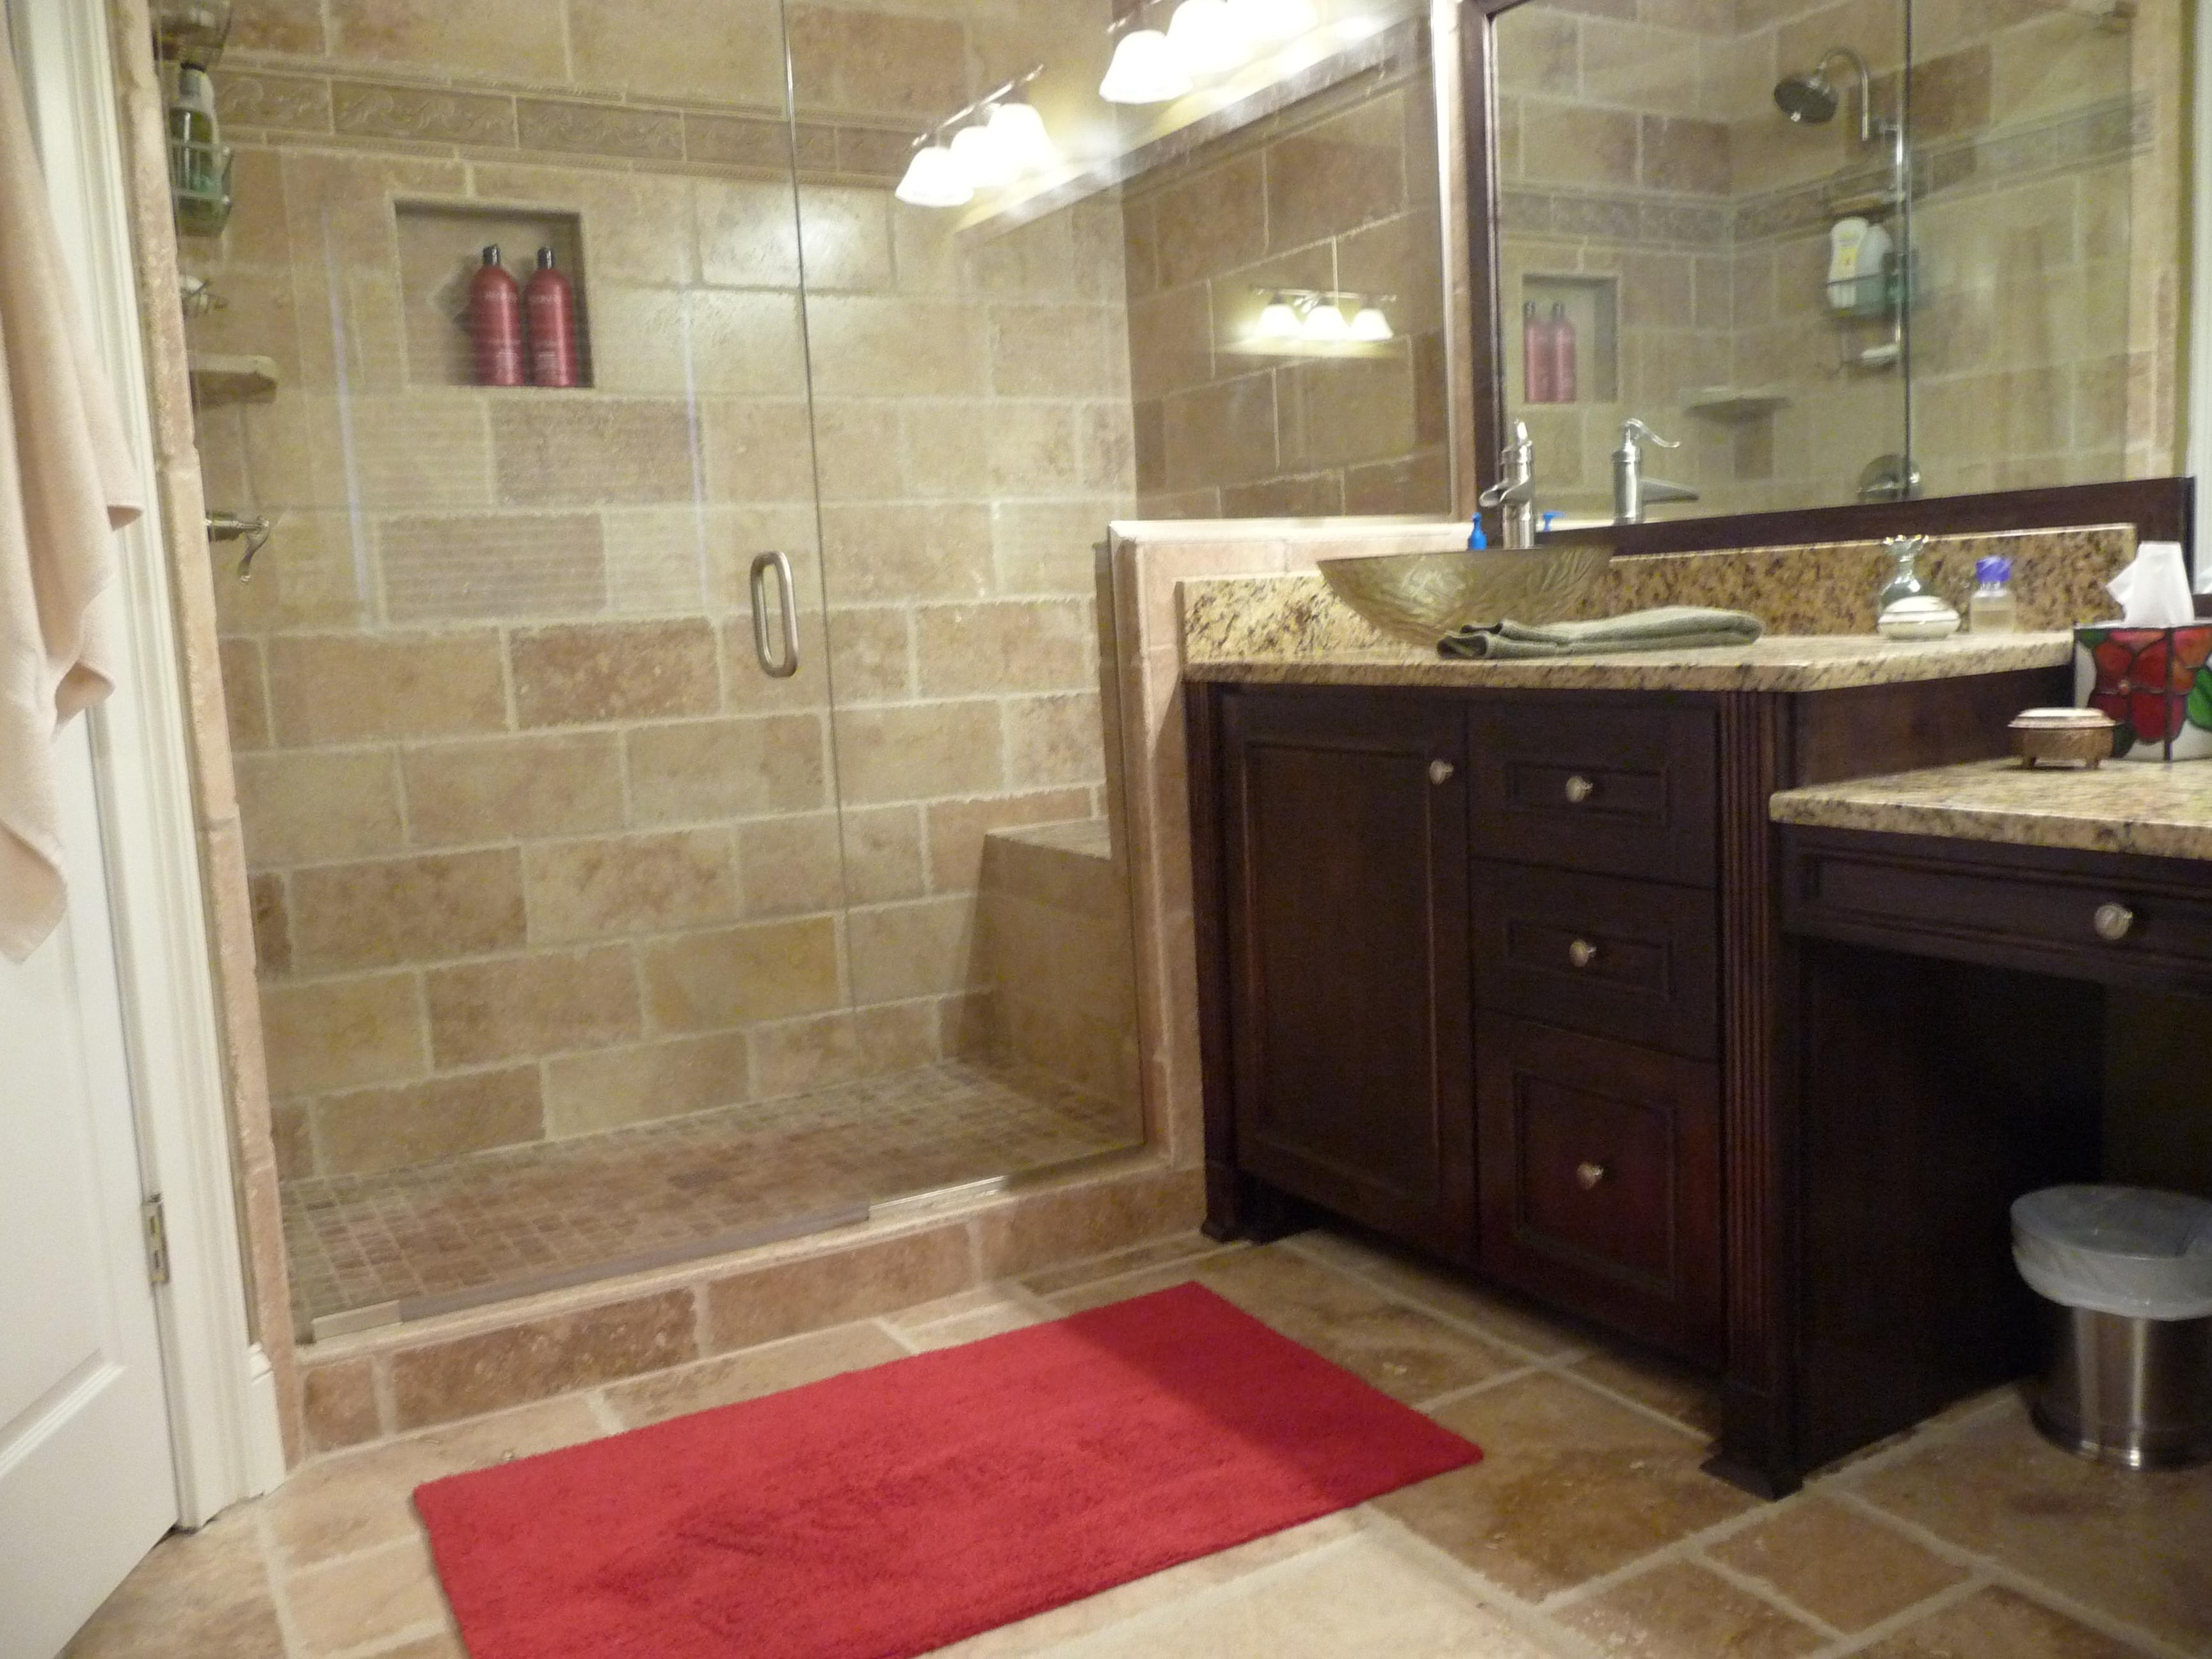 bathroom remodel pics. awesome ideas for remodeling a small